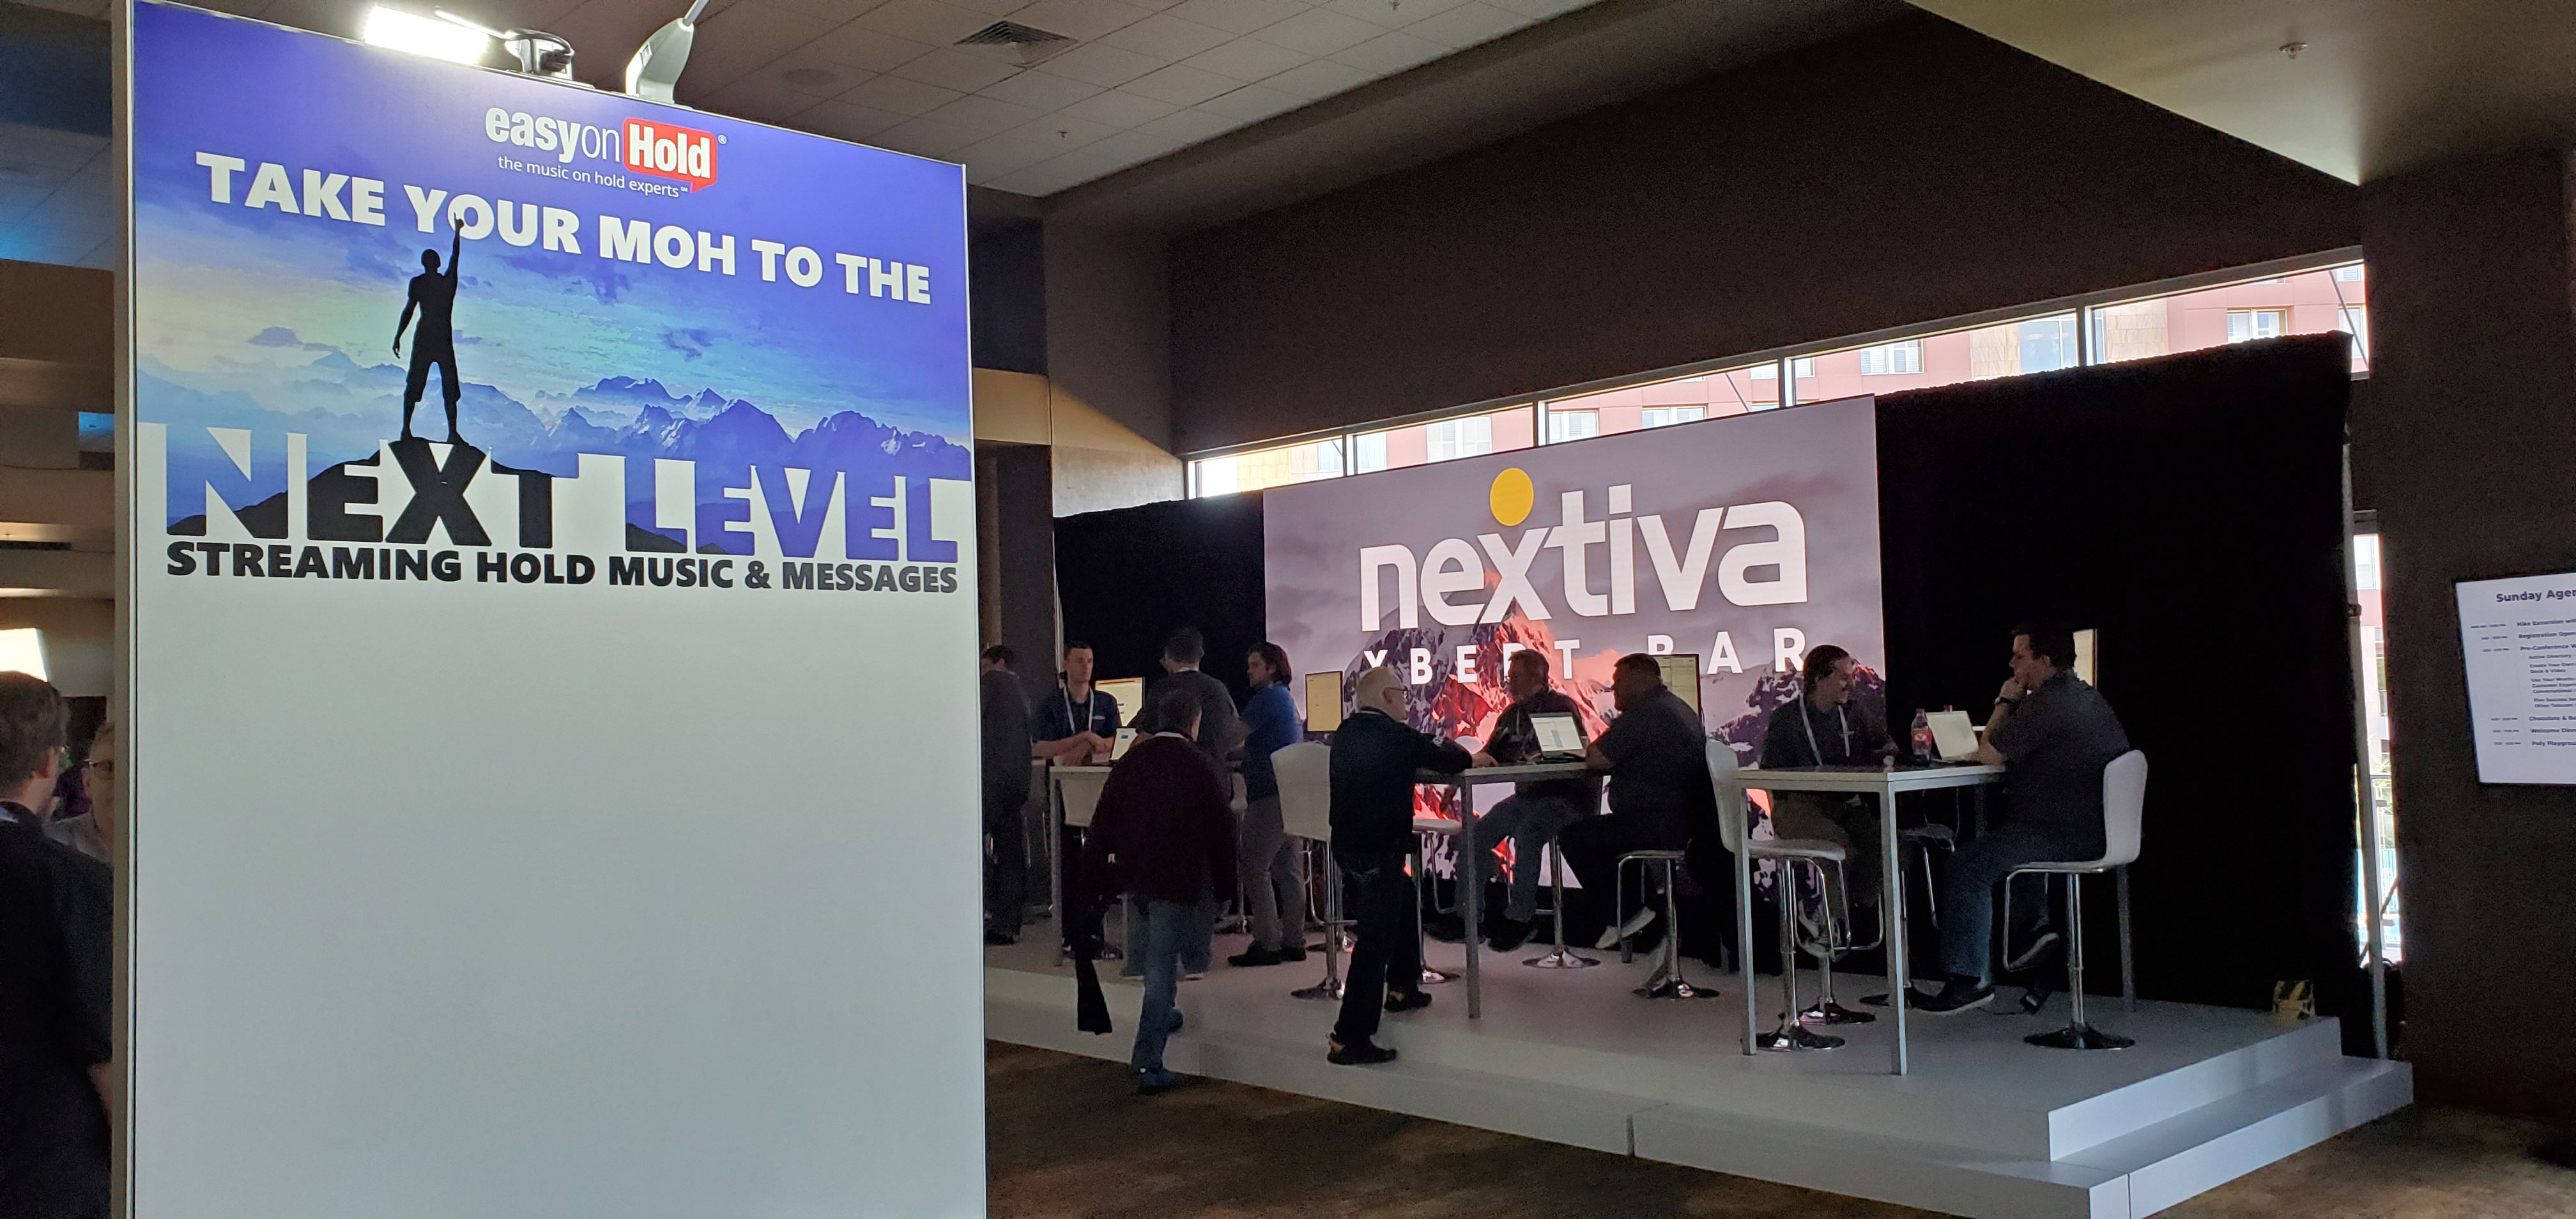 Easy On Hold at Nextcon